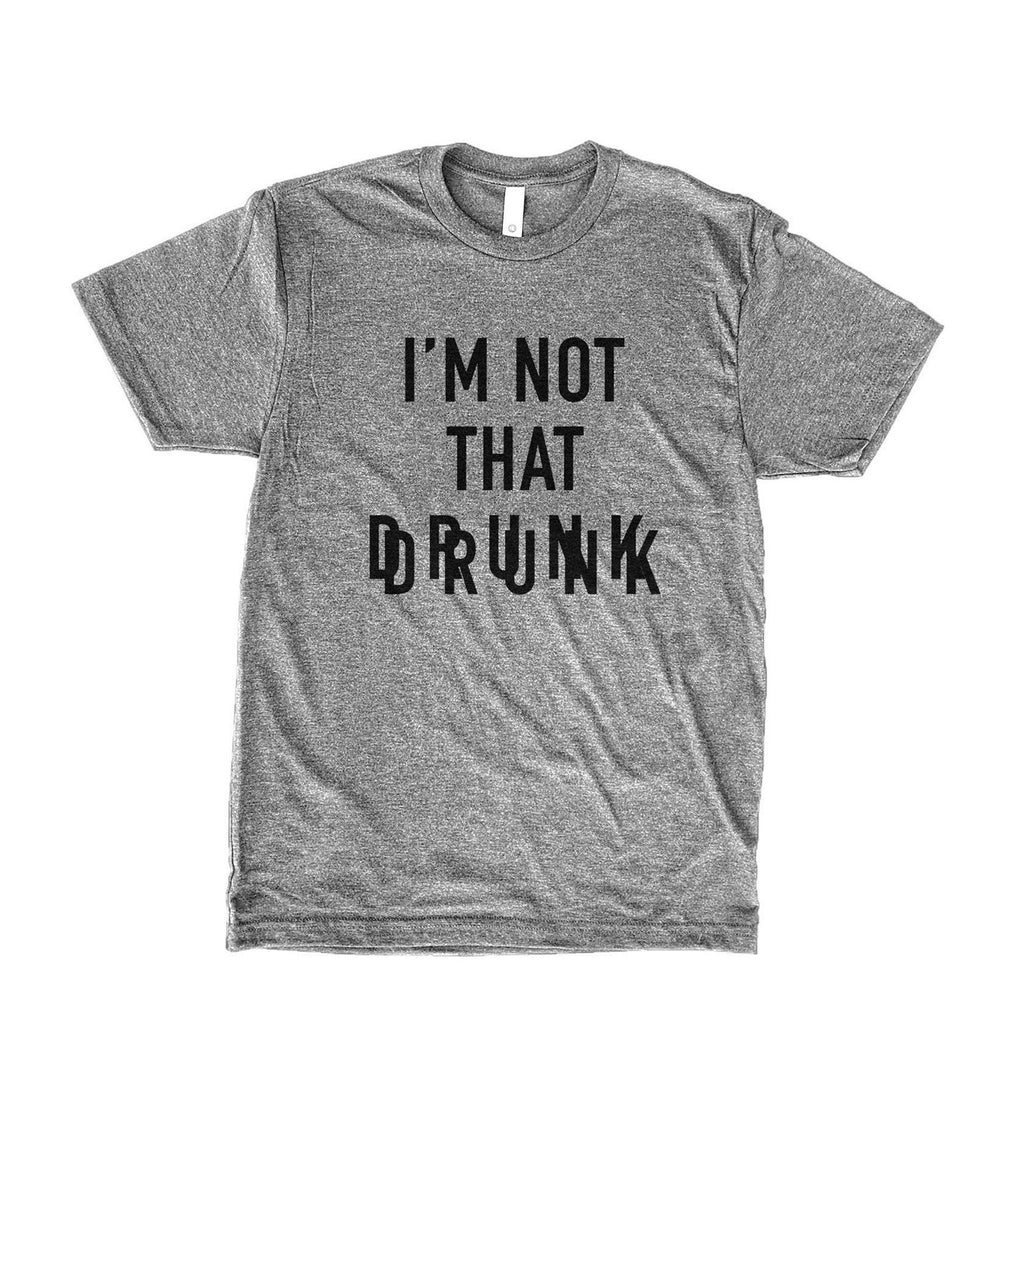 Let people know that you're NoT tHaT dRuNk! This funny drinking shirt for men is a great shirt to show that not only are you there to have a good time but you're also ready to PARTY.... ( if you're not already!)